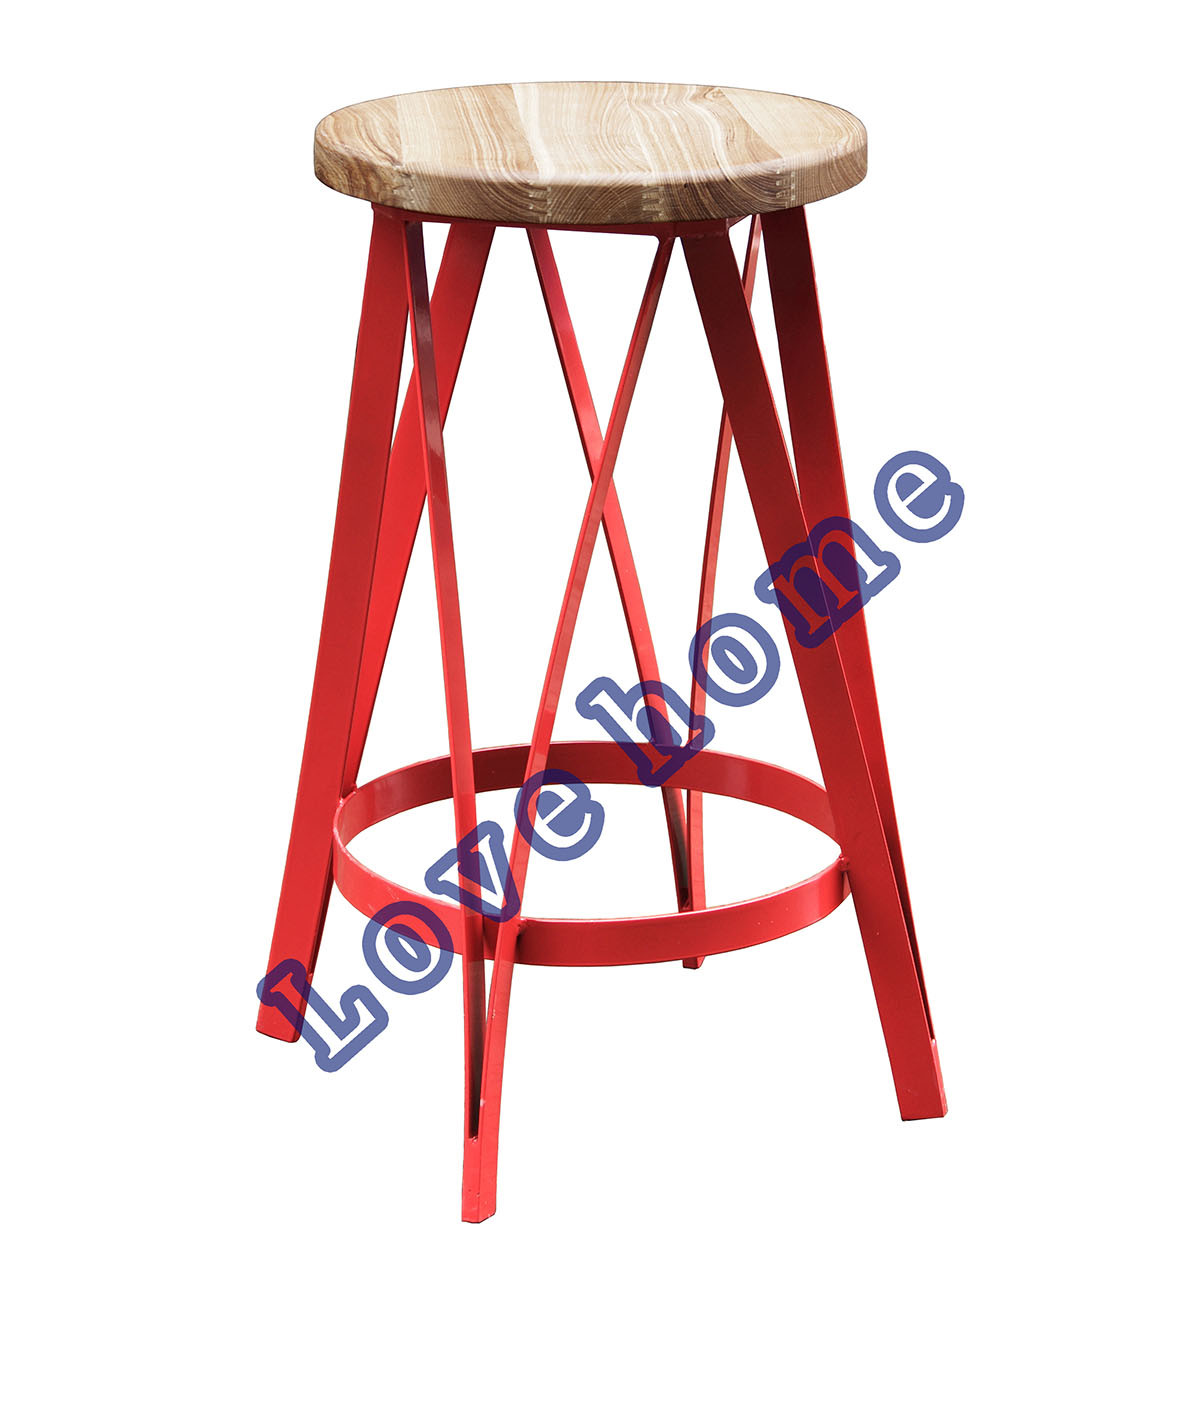 Incredible Hot Item Modern Restaurant Furniture Coffee Leisure Metal Counter Wooden Bar Stools Beatyapartments Chair Design Images Beatyapartmentscom